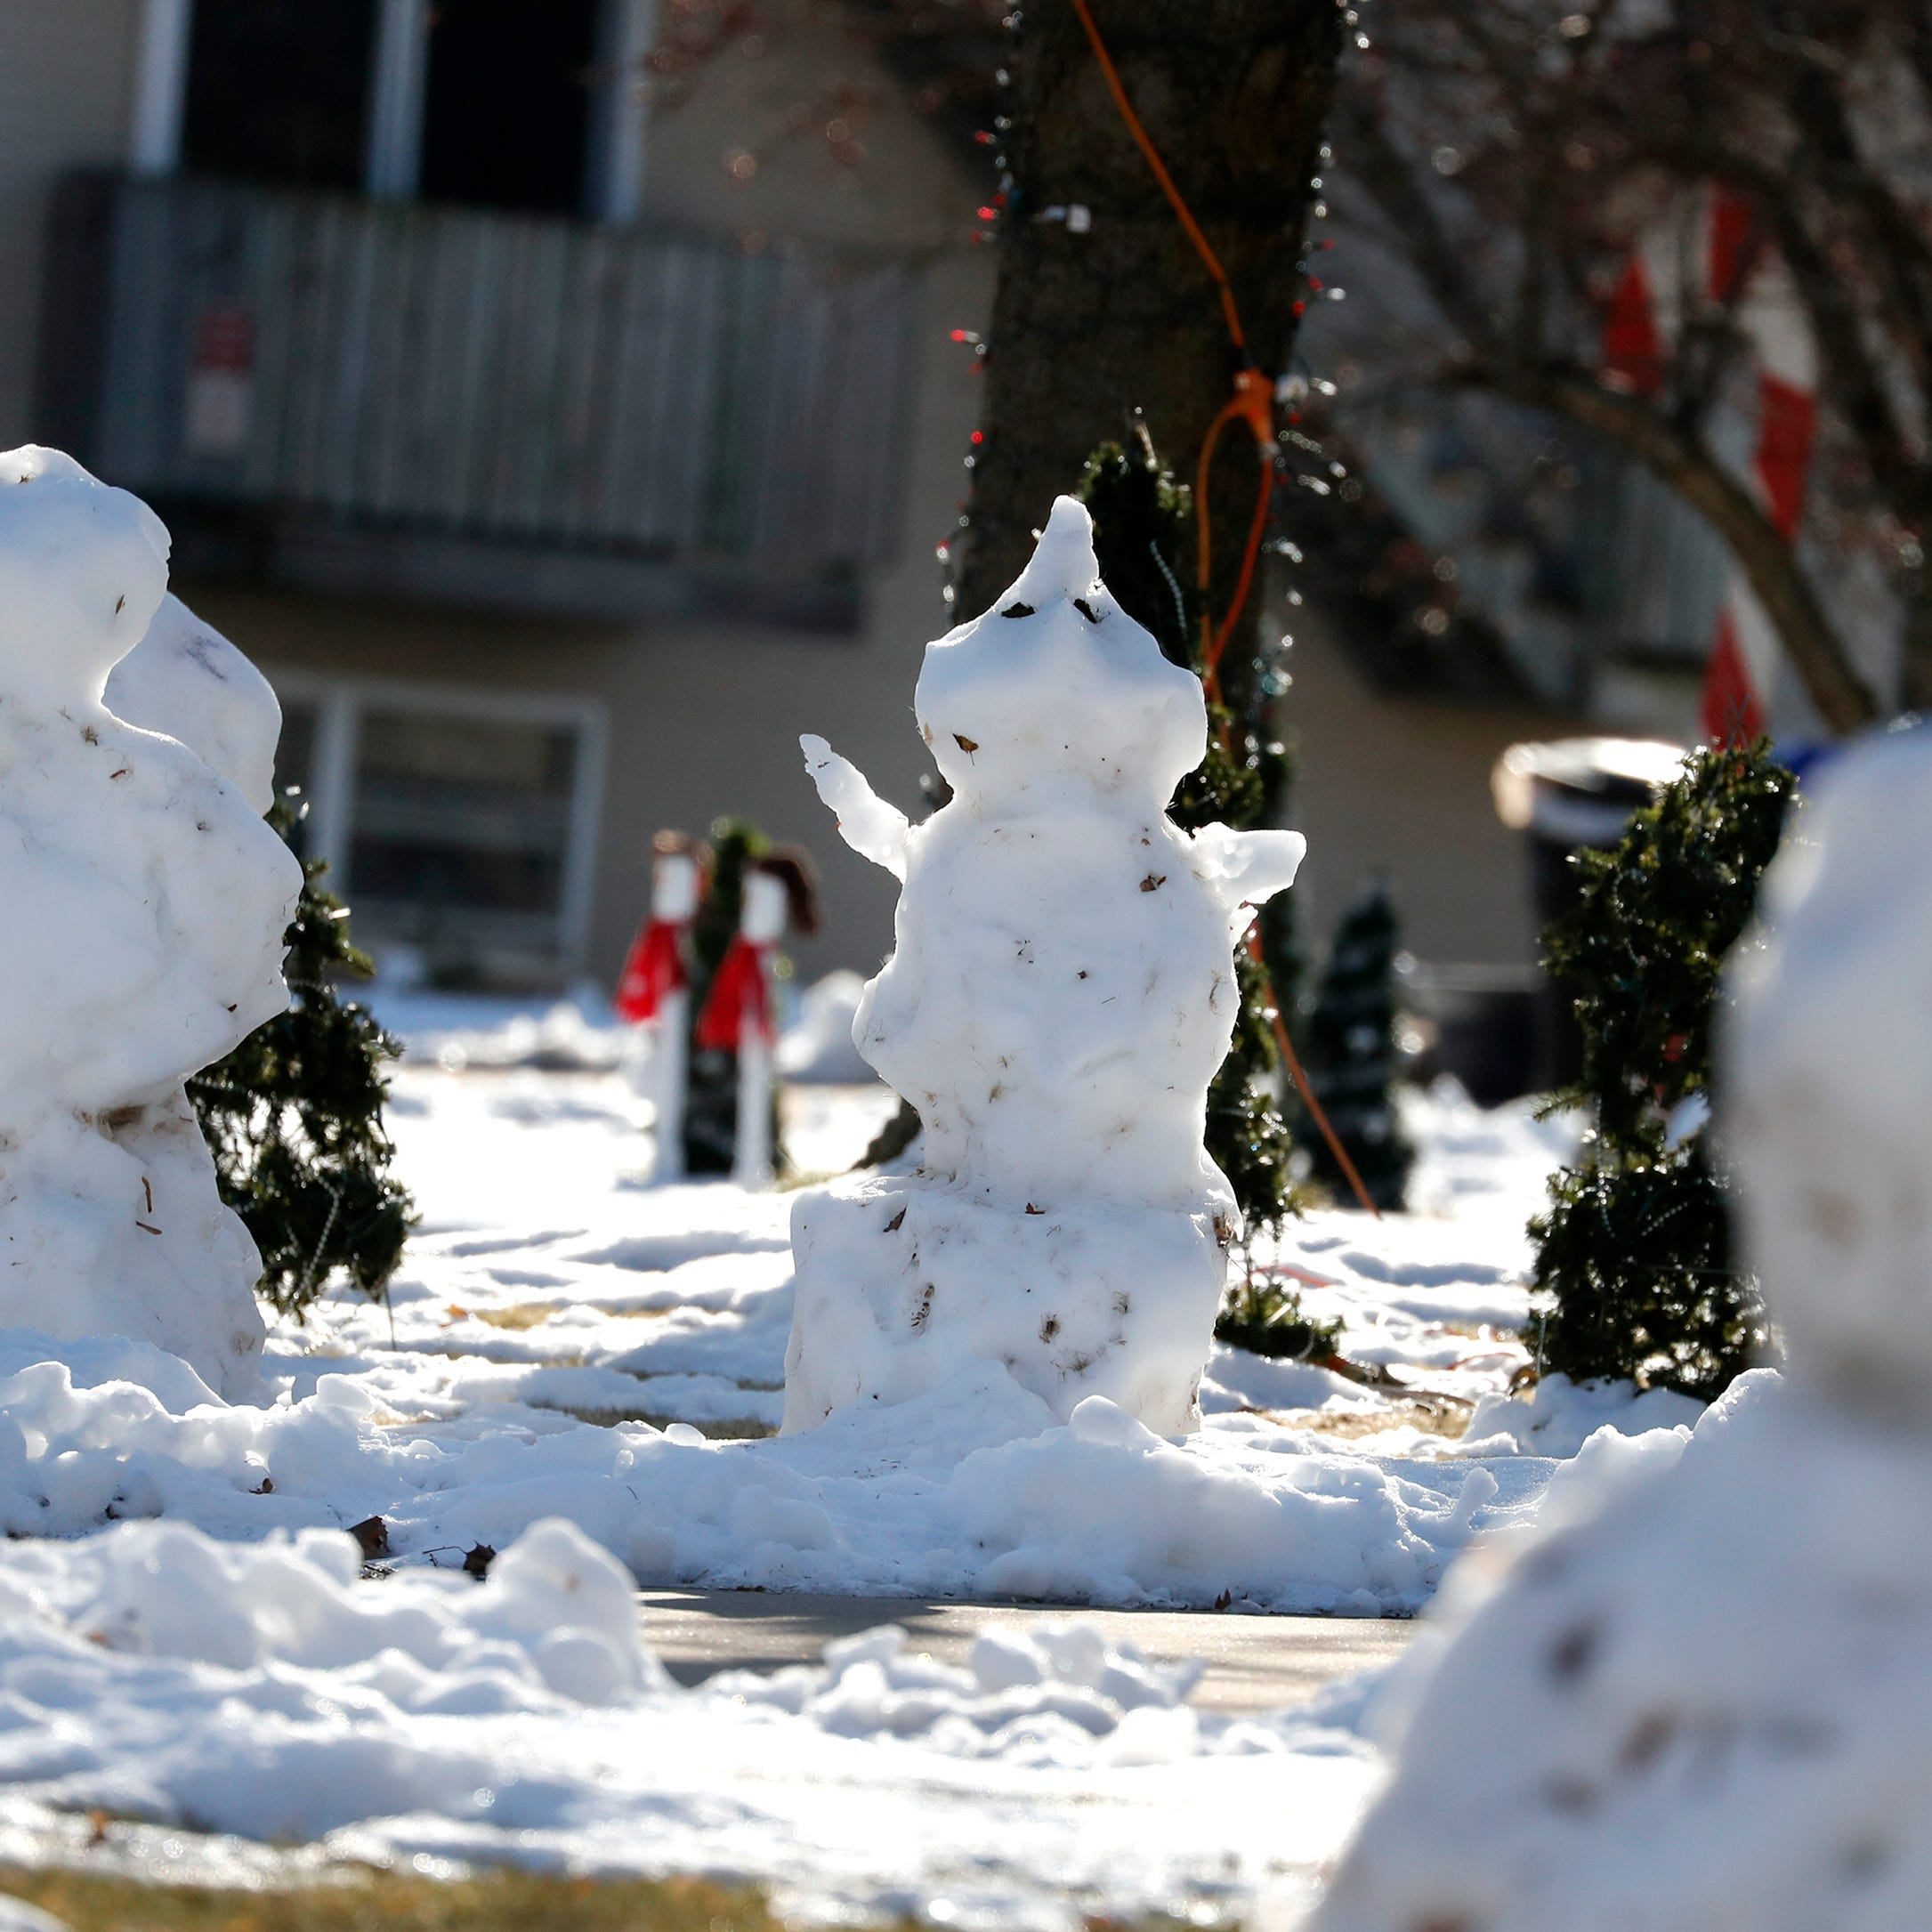 Baby, it's not cold outside: Mild weather puts kibosh on white Christmas in Wisconsin